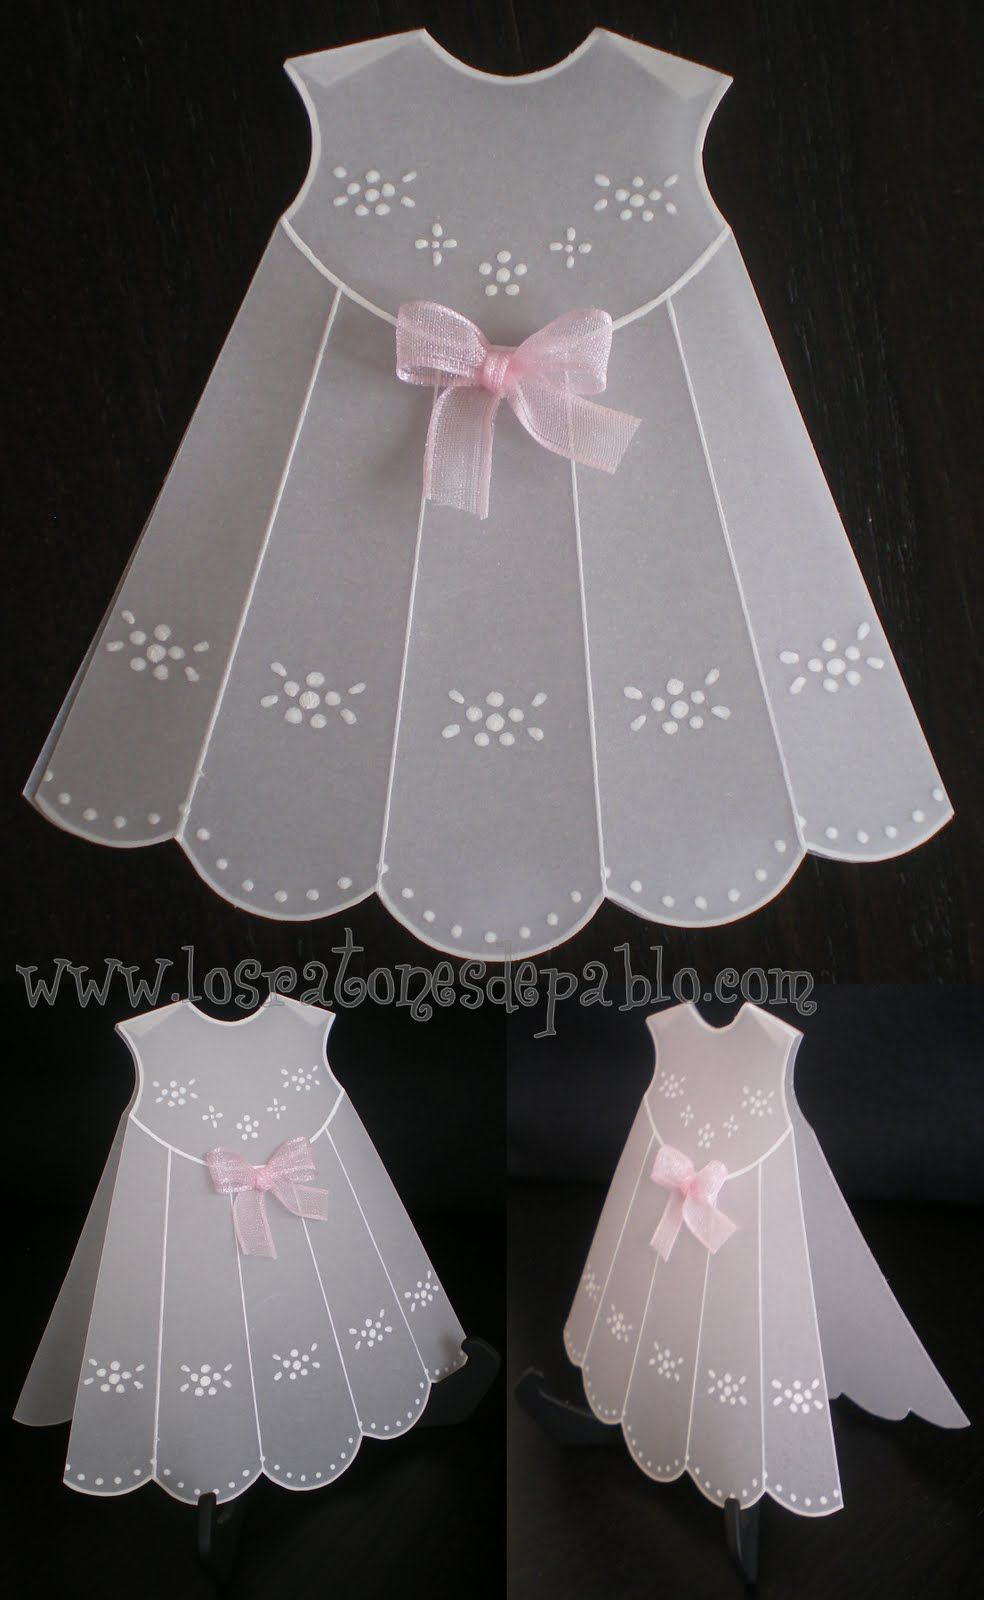 Use embossing templates and vellum to make a vintage baby dress ...